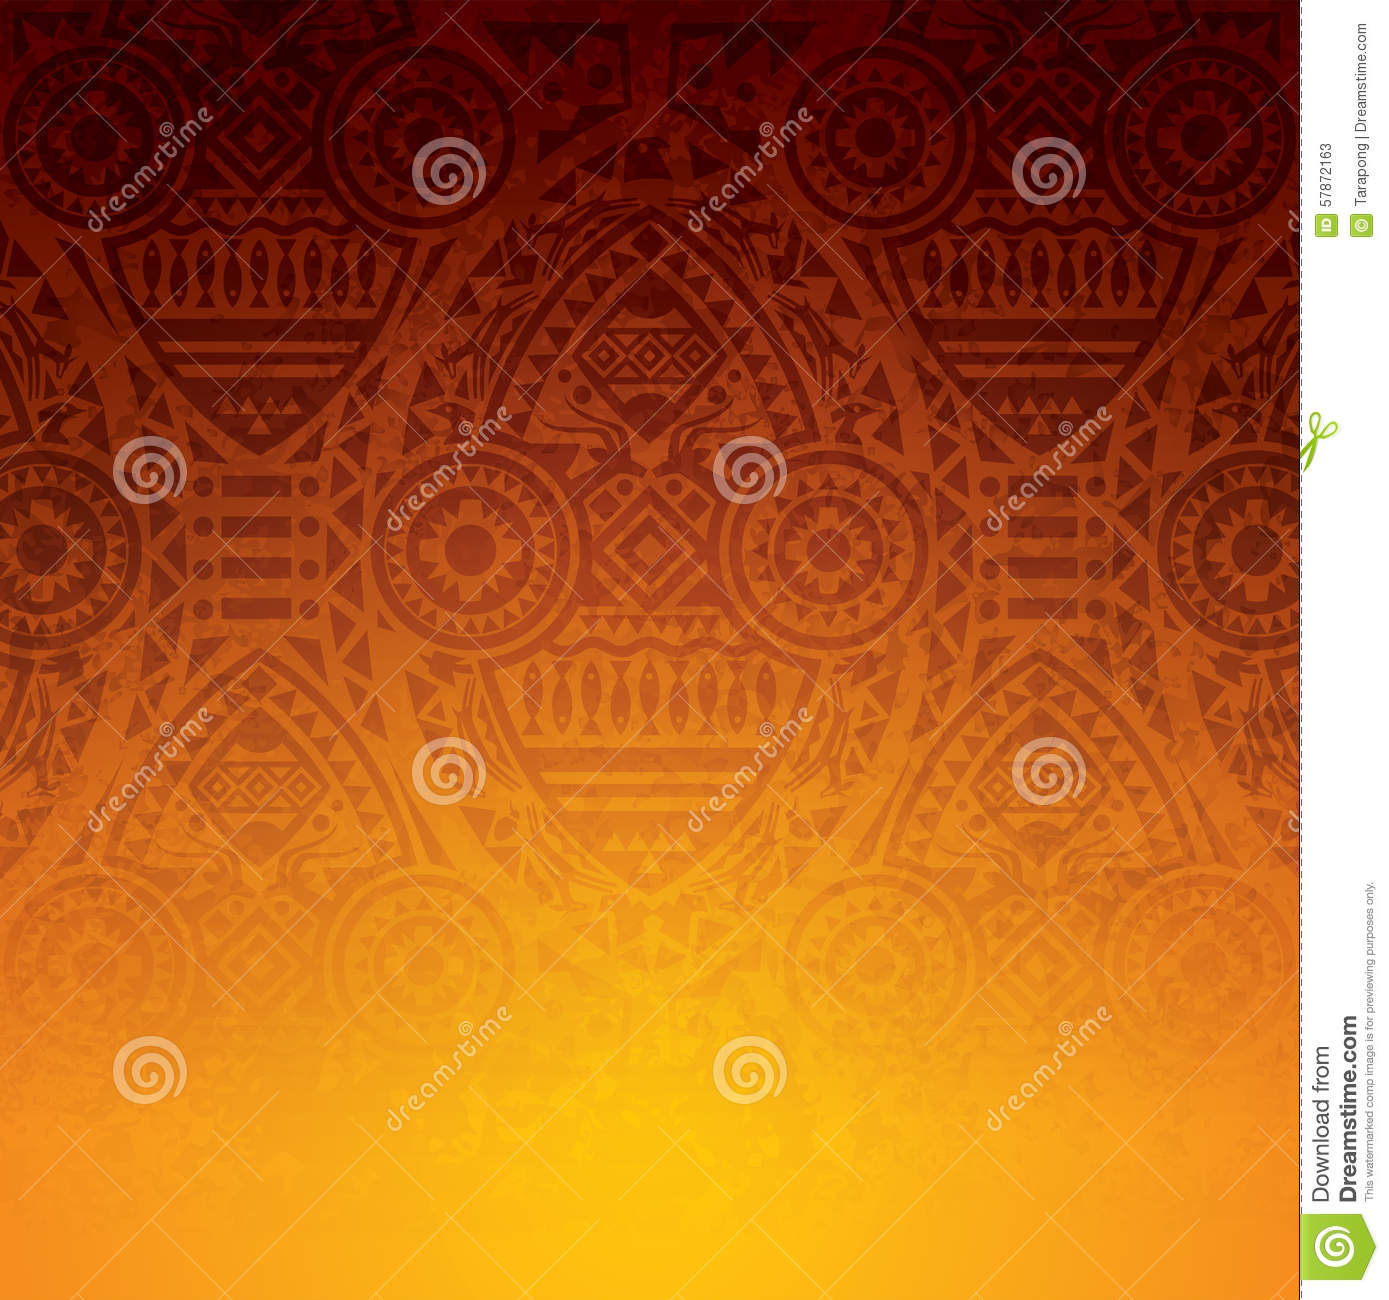 Book Cover Illustration Rates : African art background design stock vector image